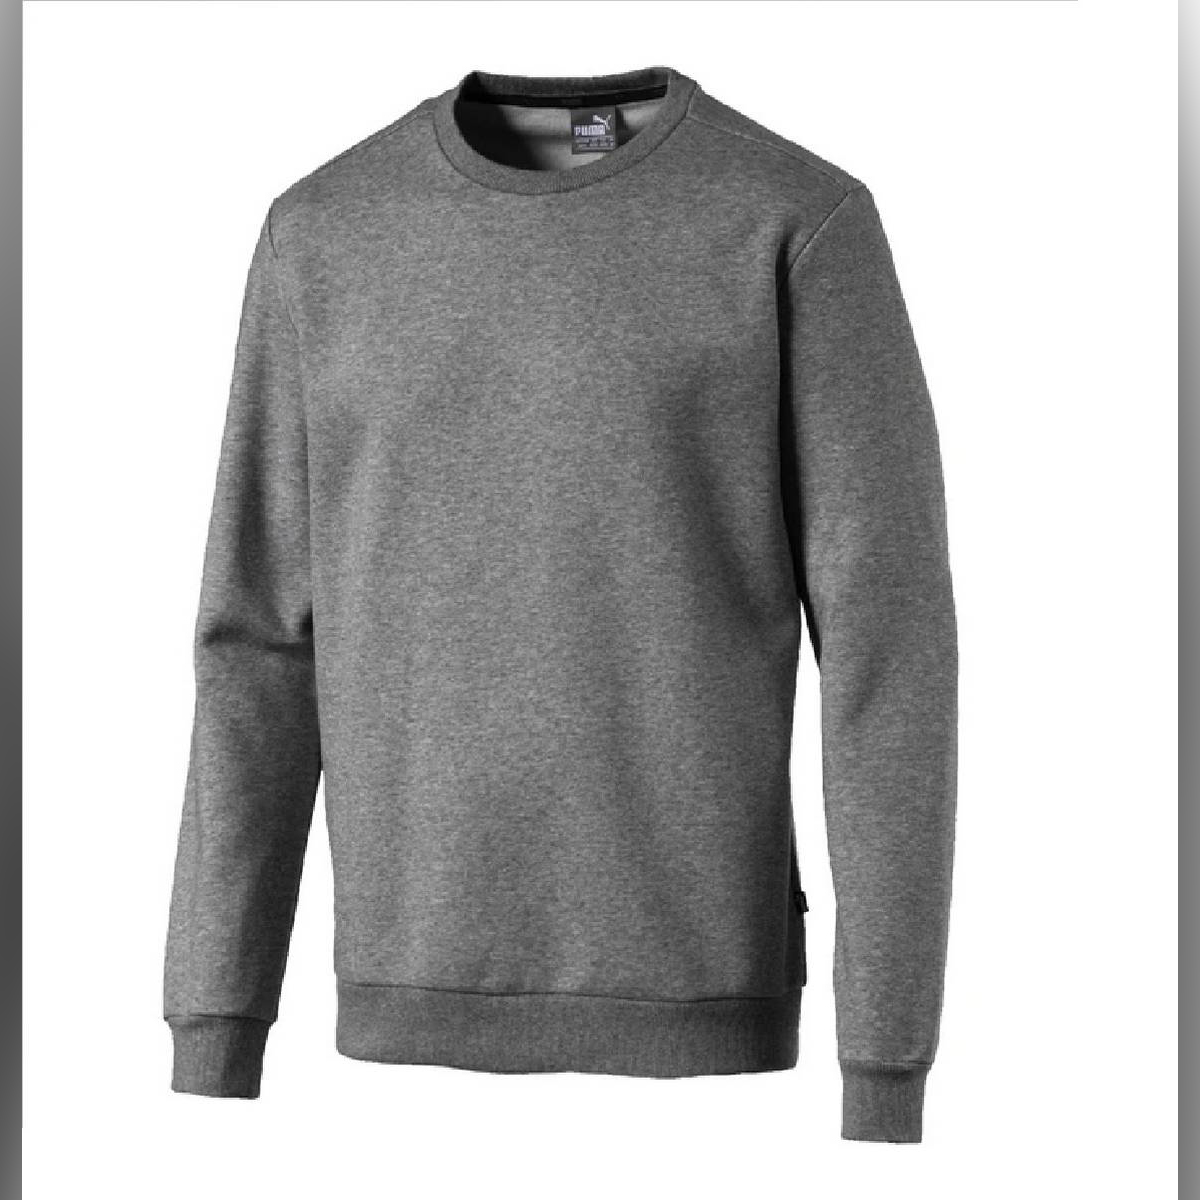 Winter  Sweat shirt Export Quality For Men And Women